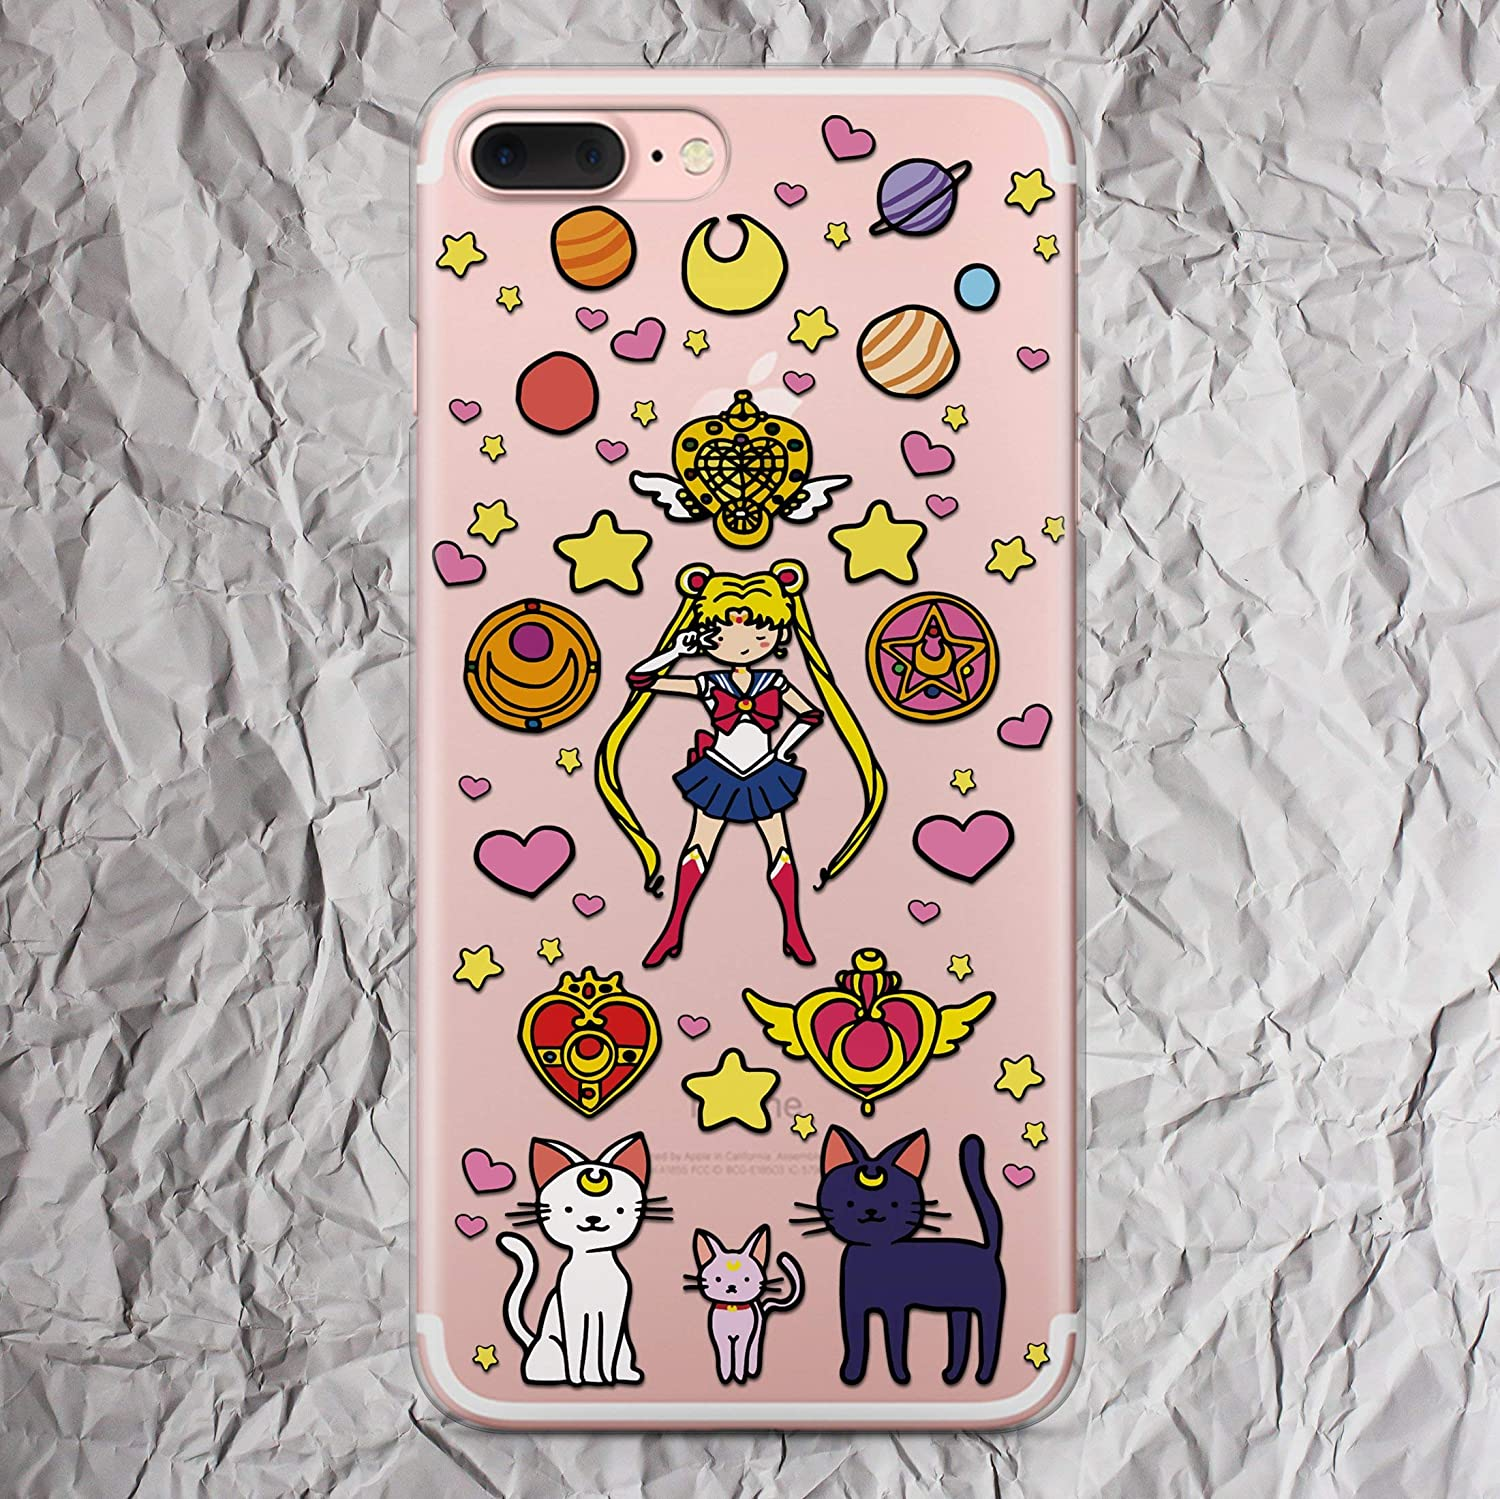 reputable site 57fb1 def6f Amazon.com: Sailor Moon Phone Case for Anime iPhone Xs Max X Xr 7 8 ...